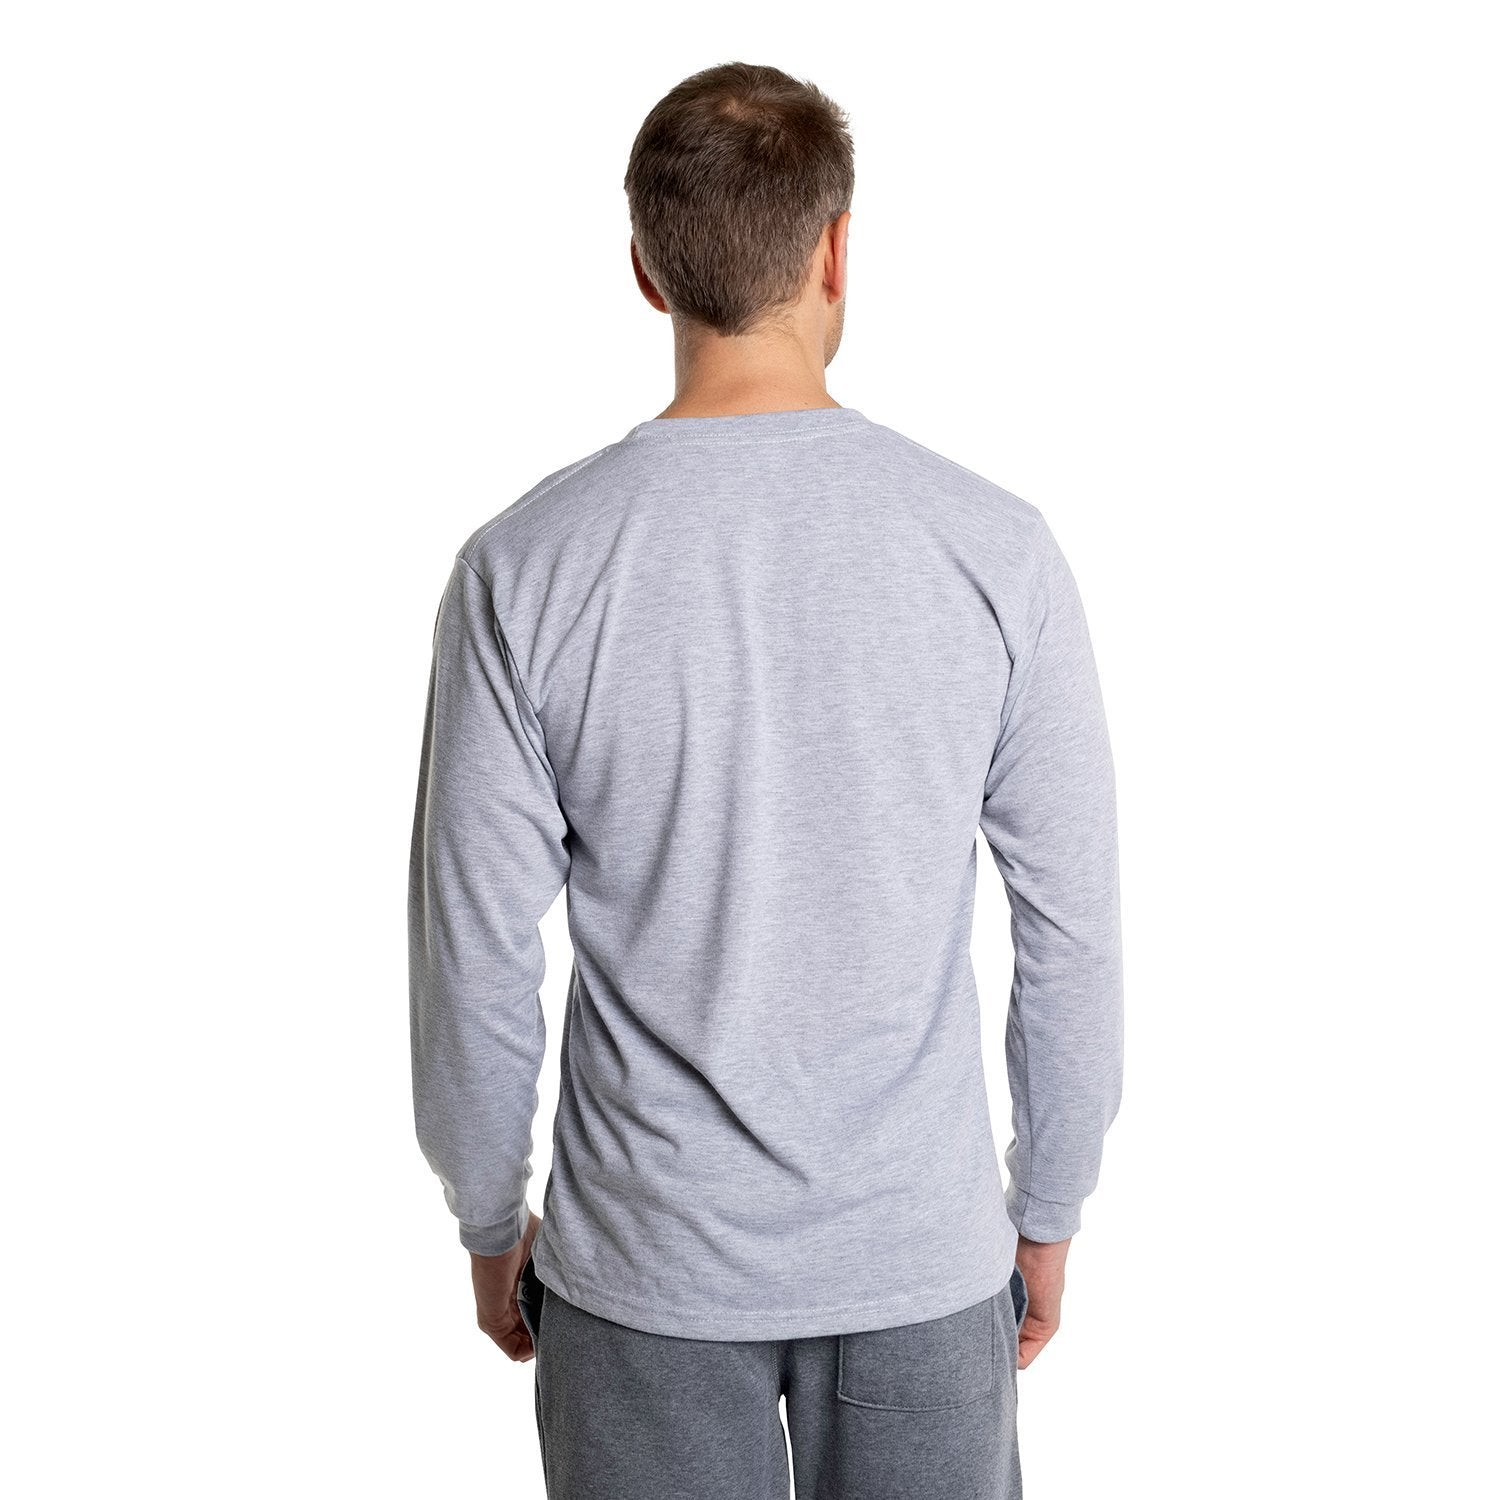 A1SJBLAH Basic Performance Long Sleeve T-Shirt - Ash Heather